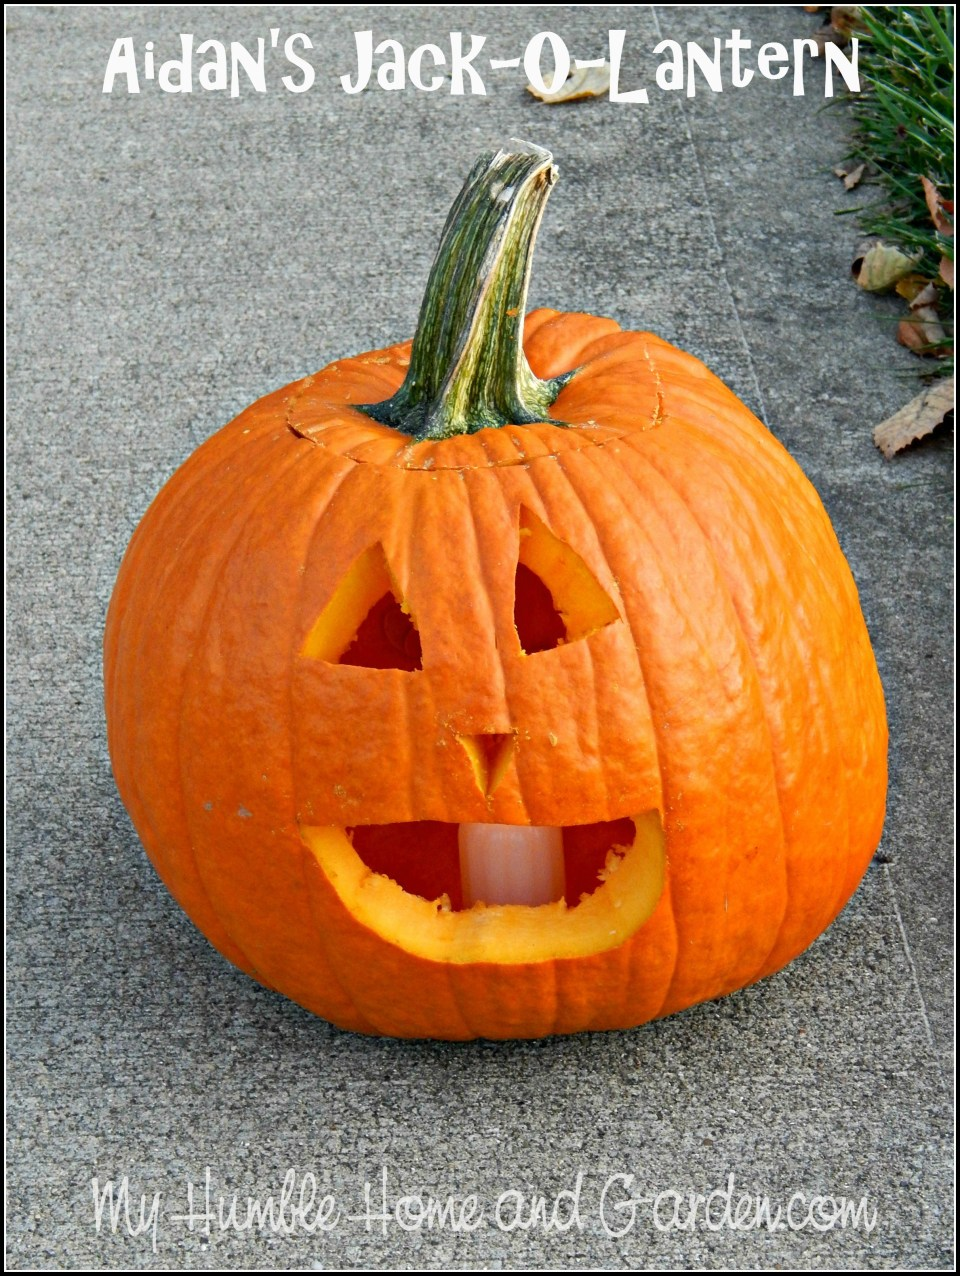 A Few Tips For A Great Halloween Night!